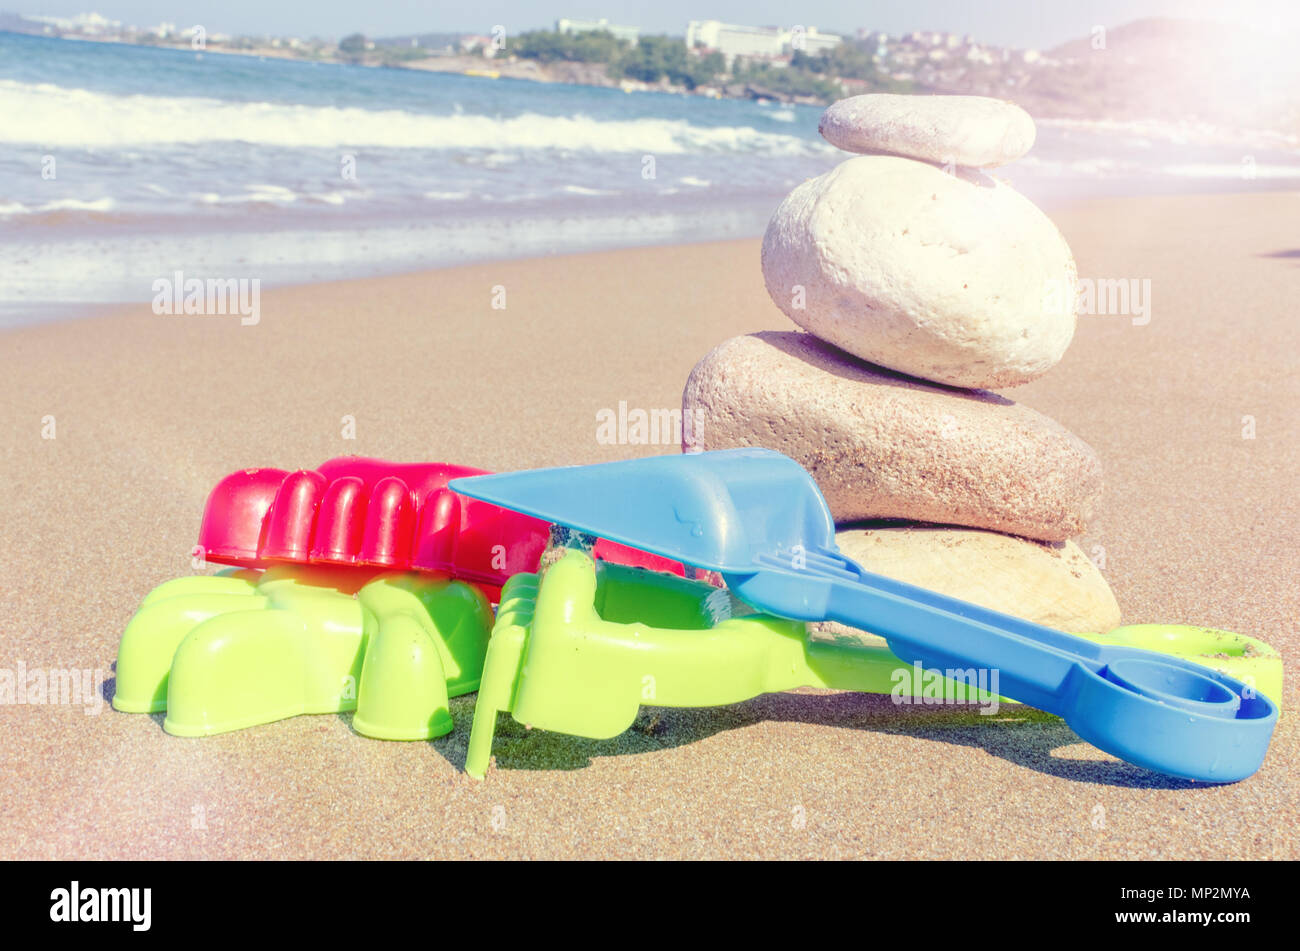 08f0f20c3276c Vacation image of children s beach toys and stones on the sand in beautiful  sunny day. Kids summer holidays activity concept. Copy space.